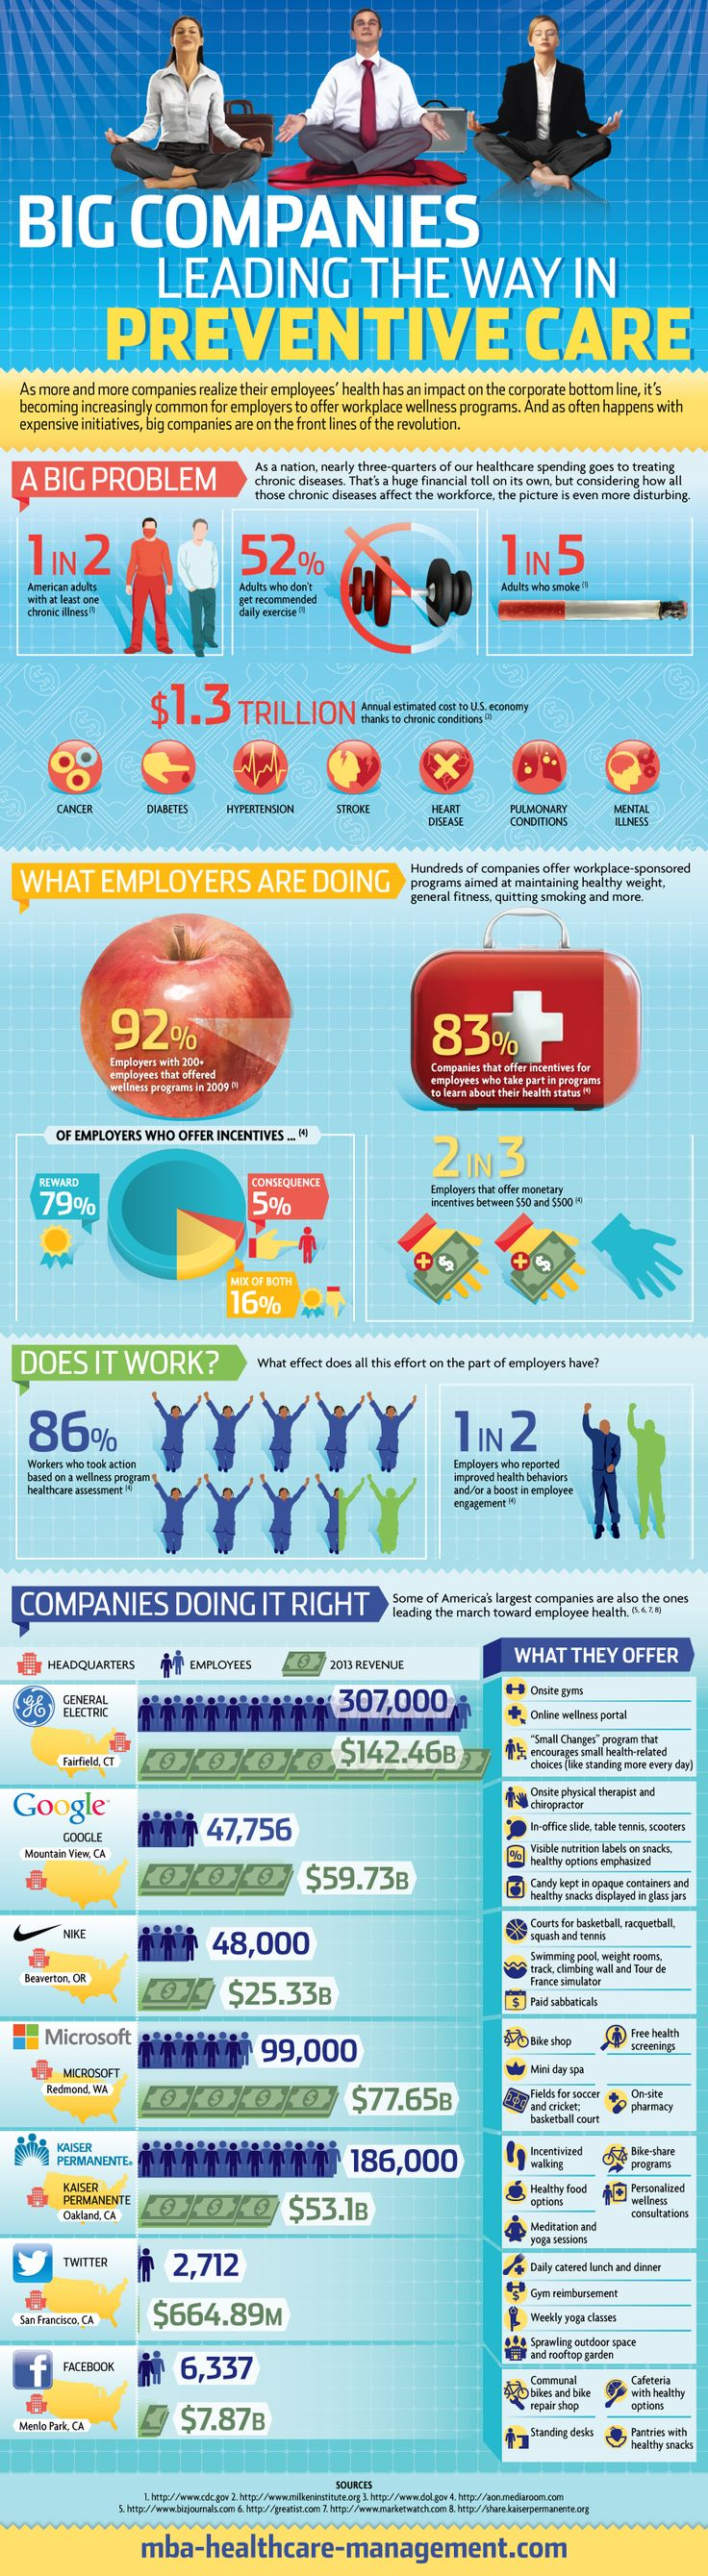 Big companies leading the way in wellness care